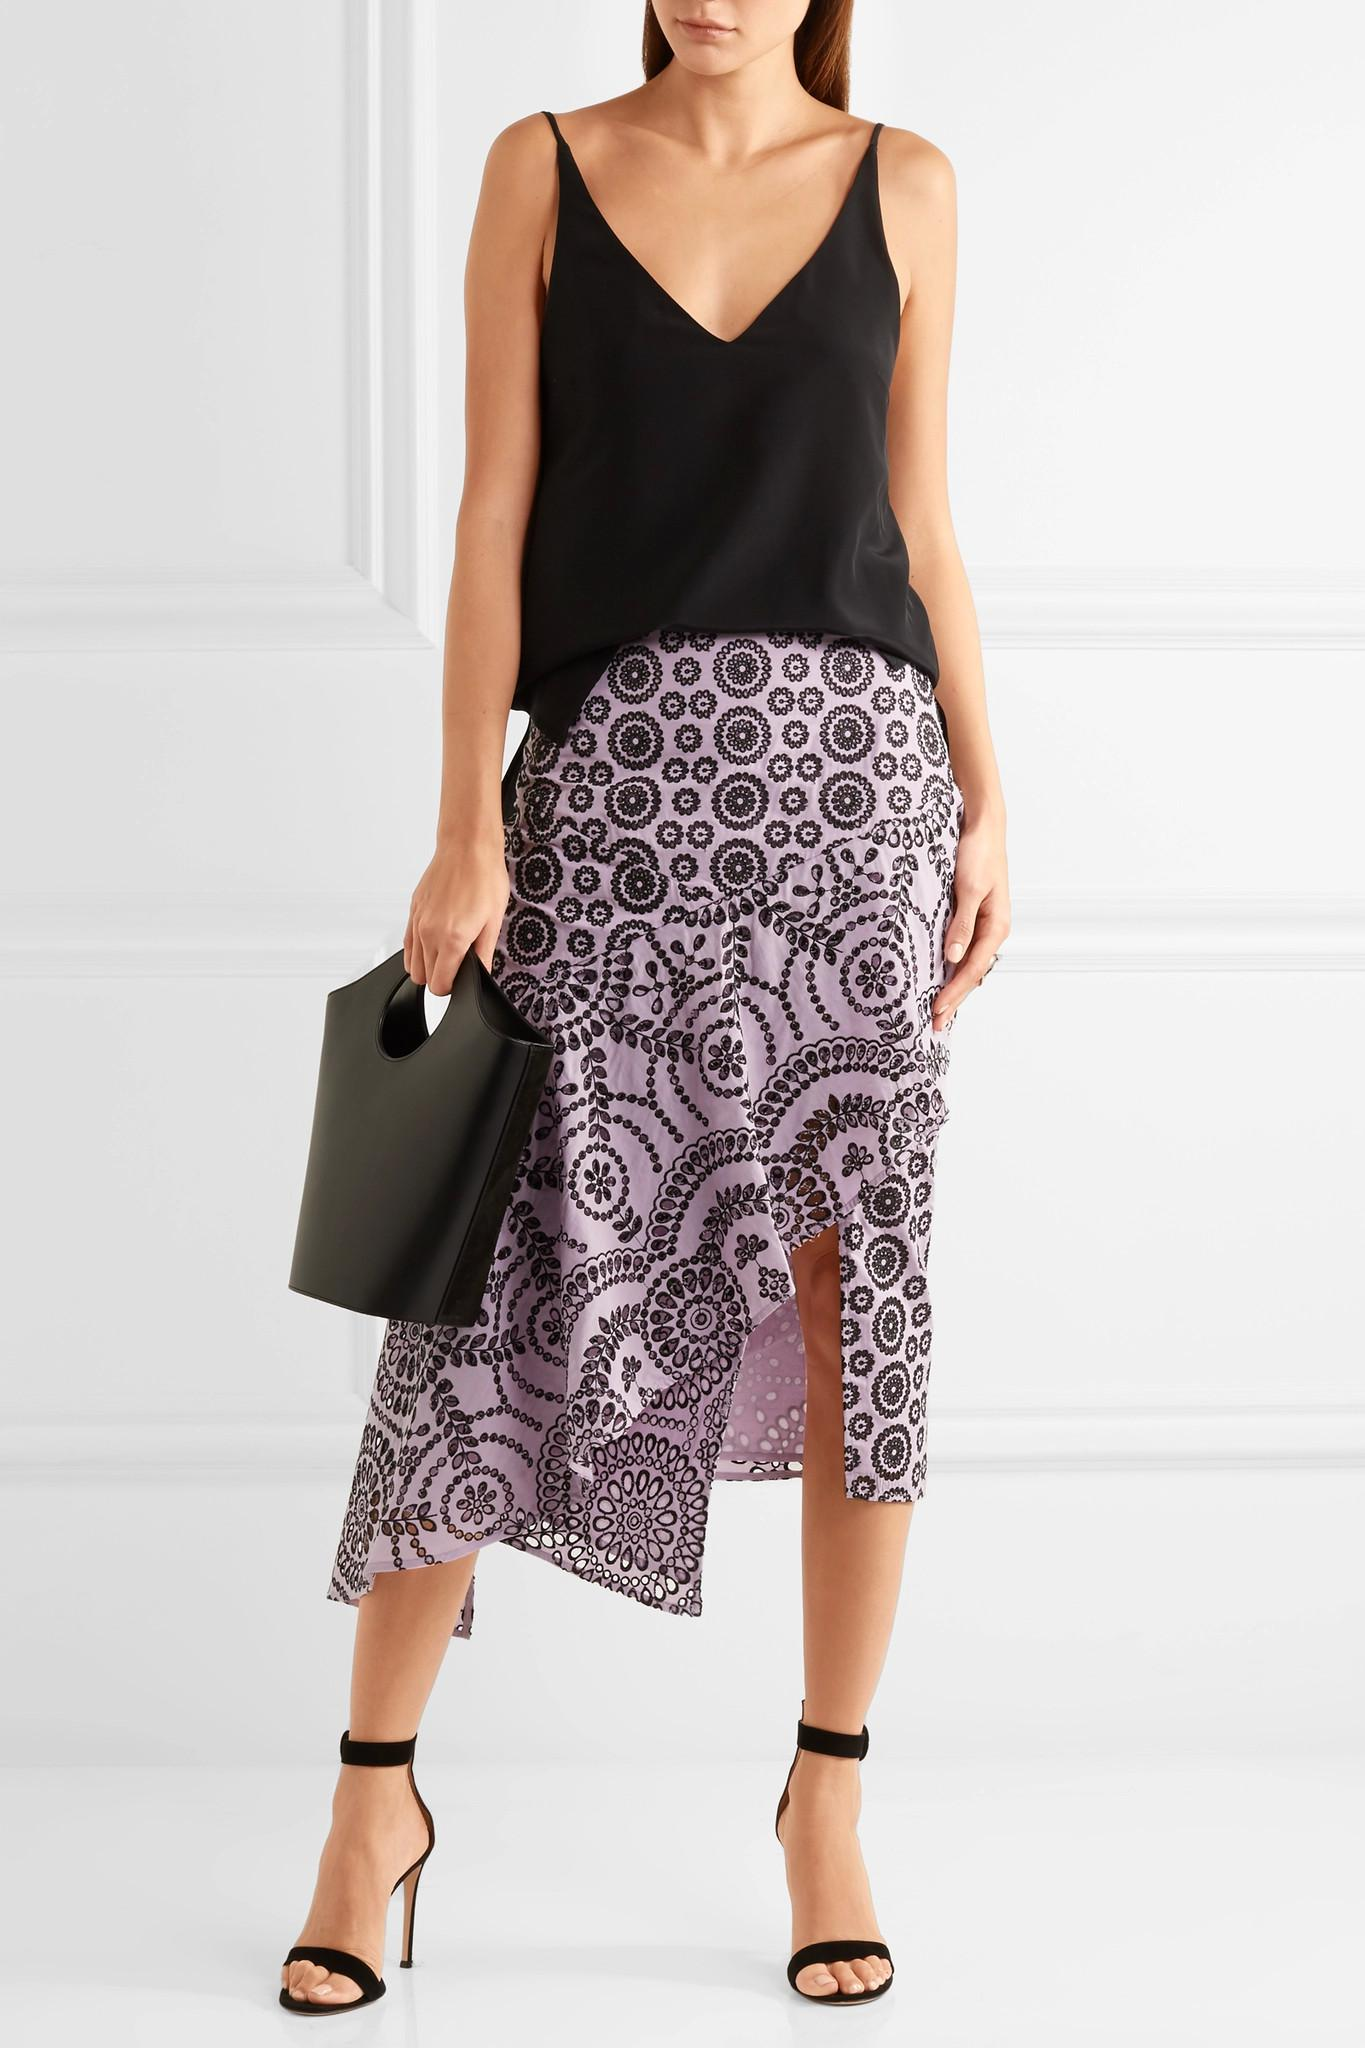 Clearance Find Great Cleary Asymmetric Broderie Anglaise Cotton Midi Skirt - Lilac Topshop Clearance Store For Sale Clearance Cheap Price RwFN844GF